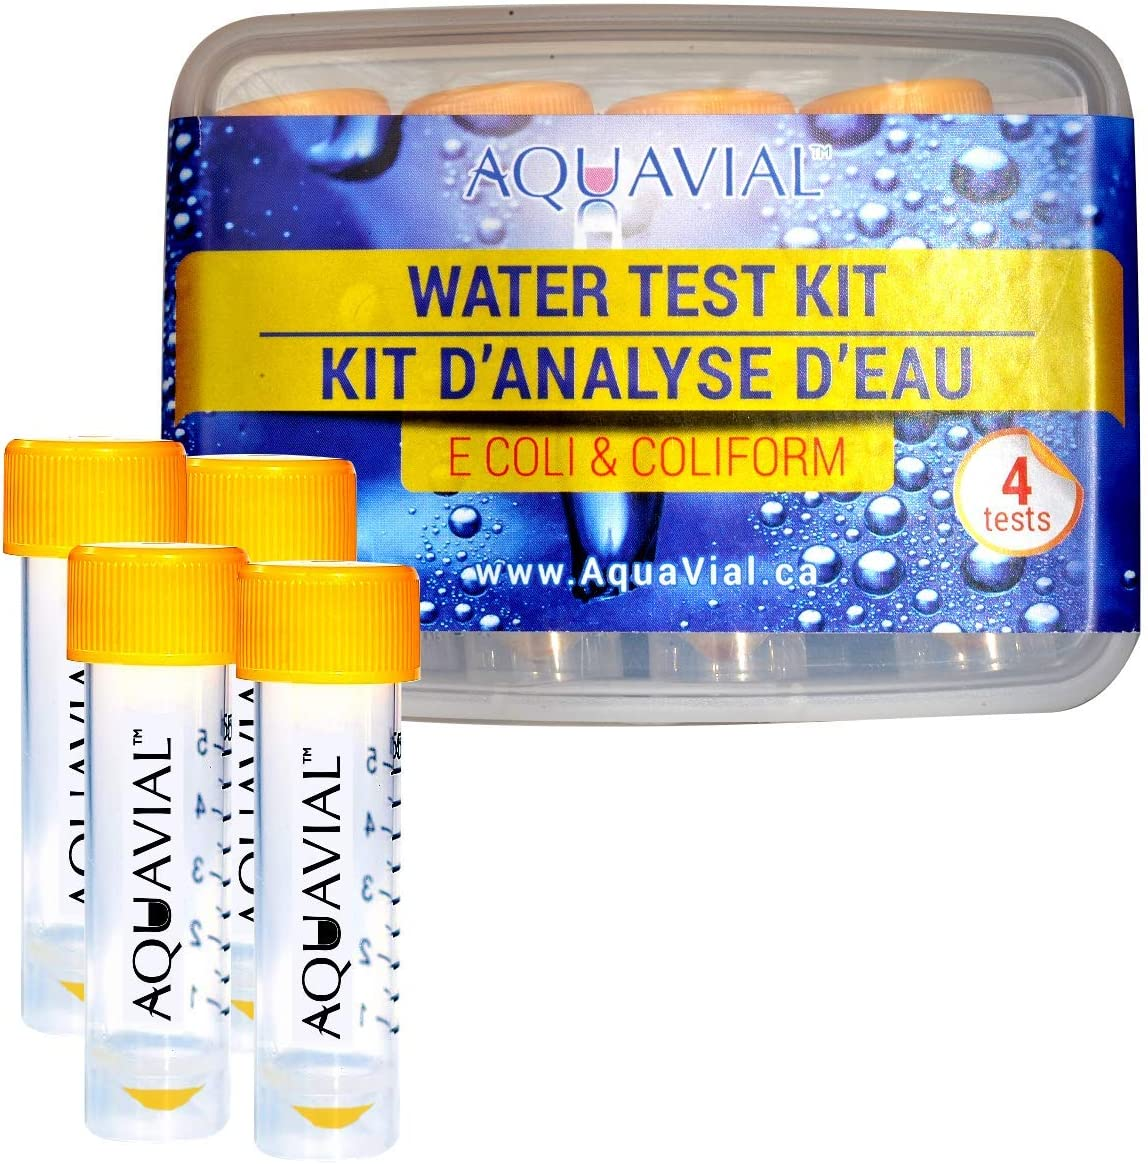 AquaVial | Water Test Kit | Detect E.Coli & Coliform | Use in Drinking Water, Wells, Pools, Hot Tubs or During Travels (4-Pack)